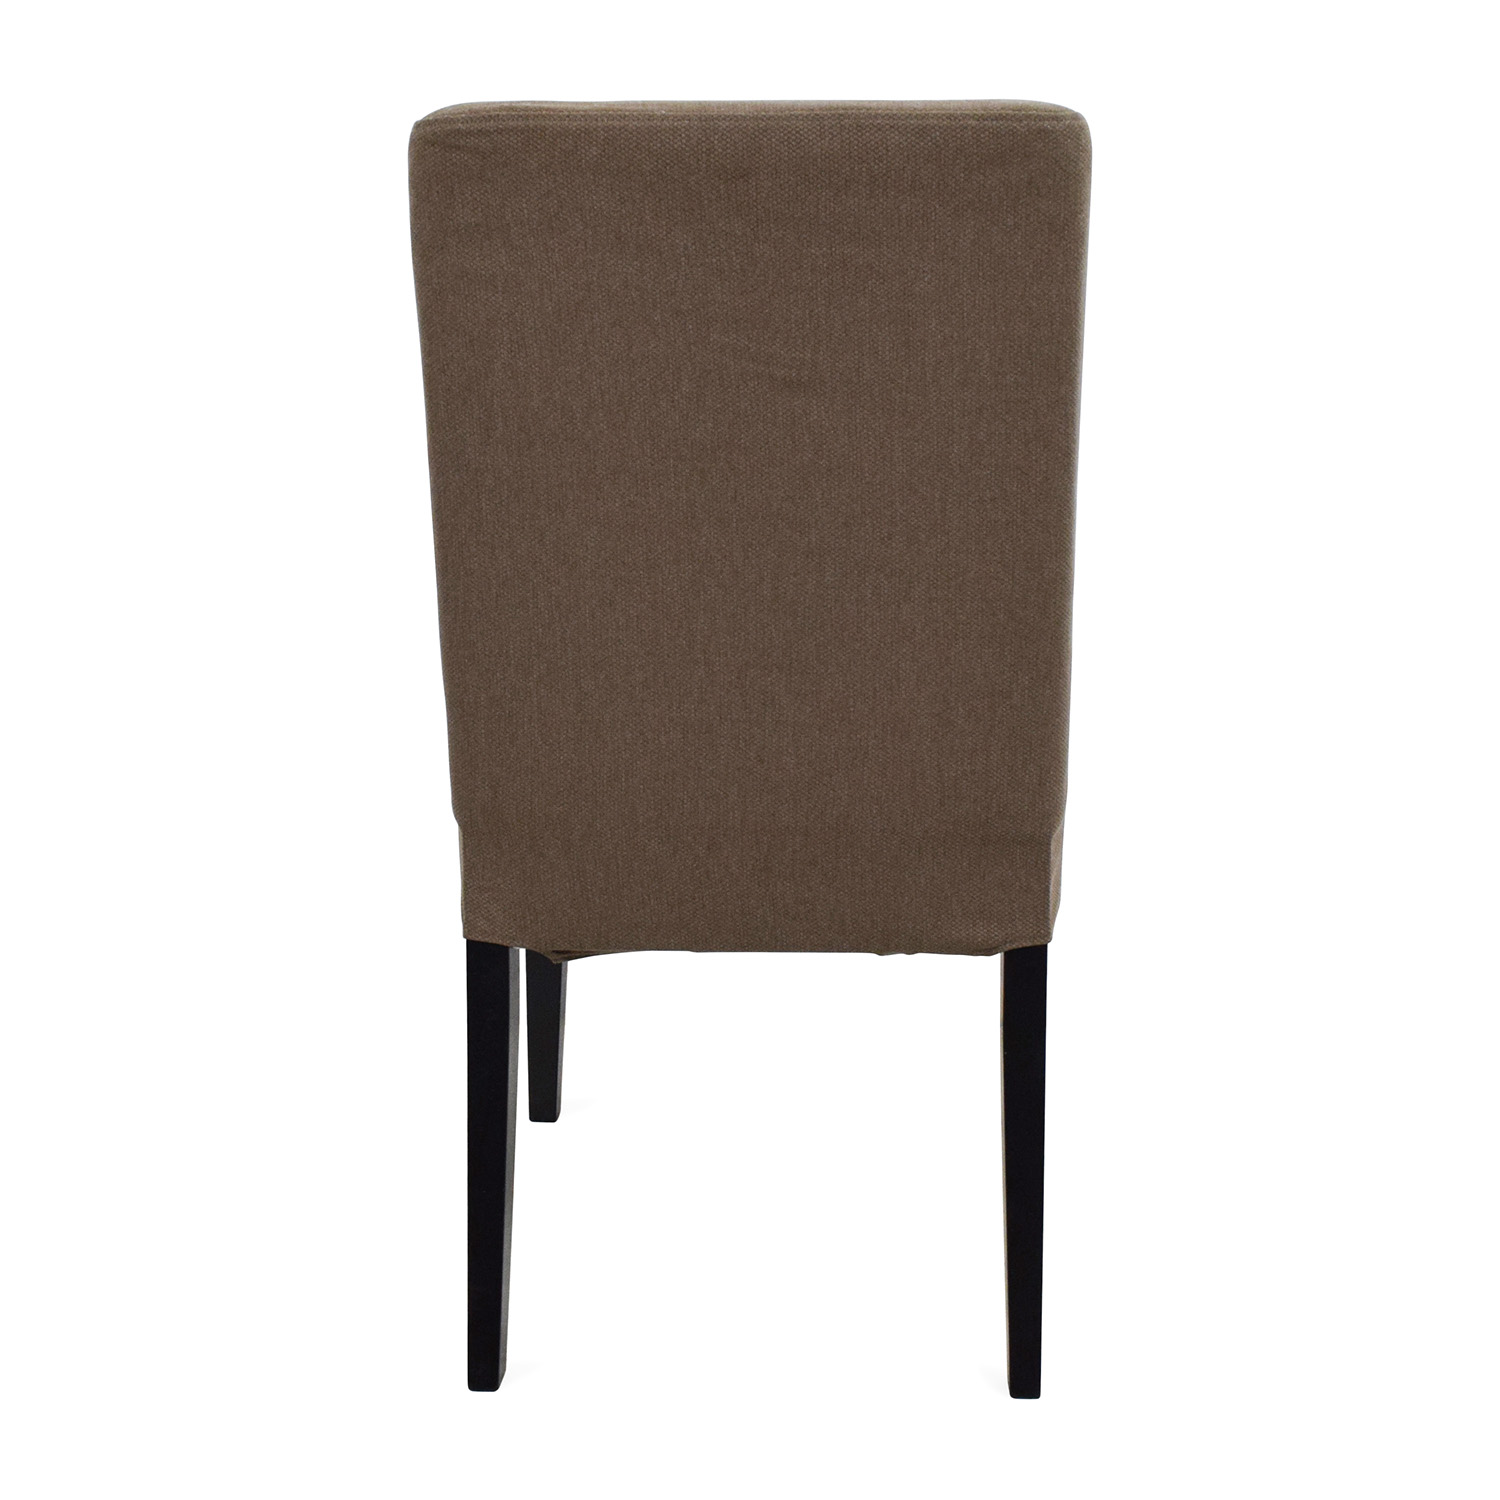 78 off ikea ikea henriksdal chair chairs for Furniture chairs